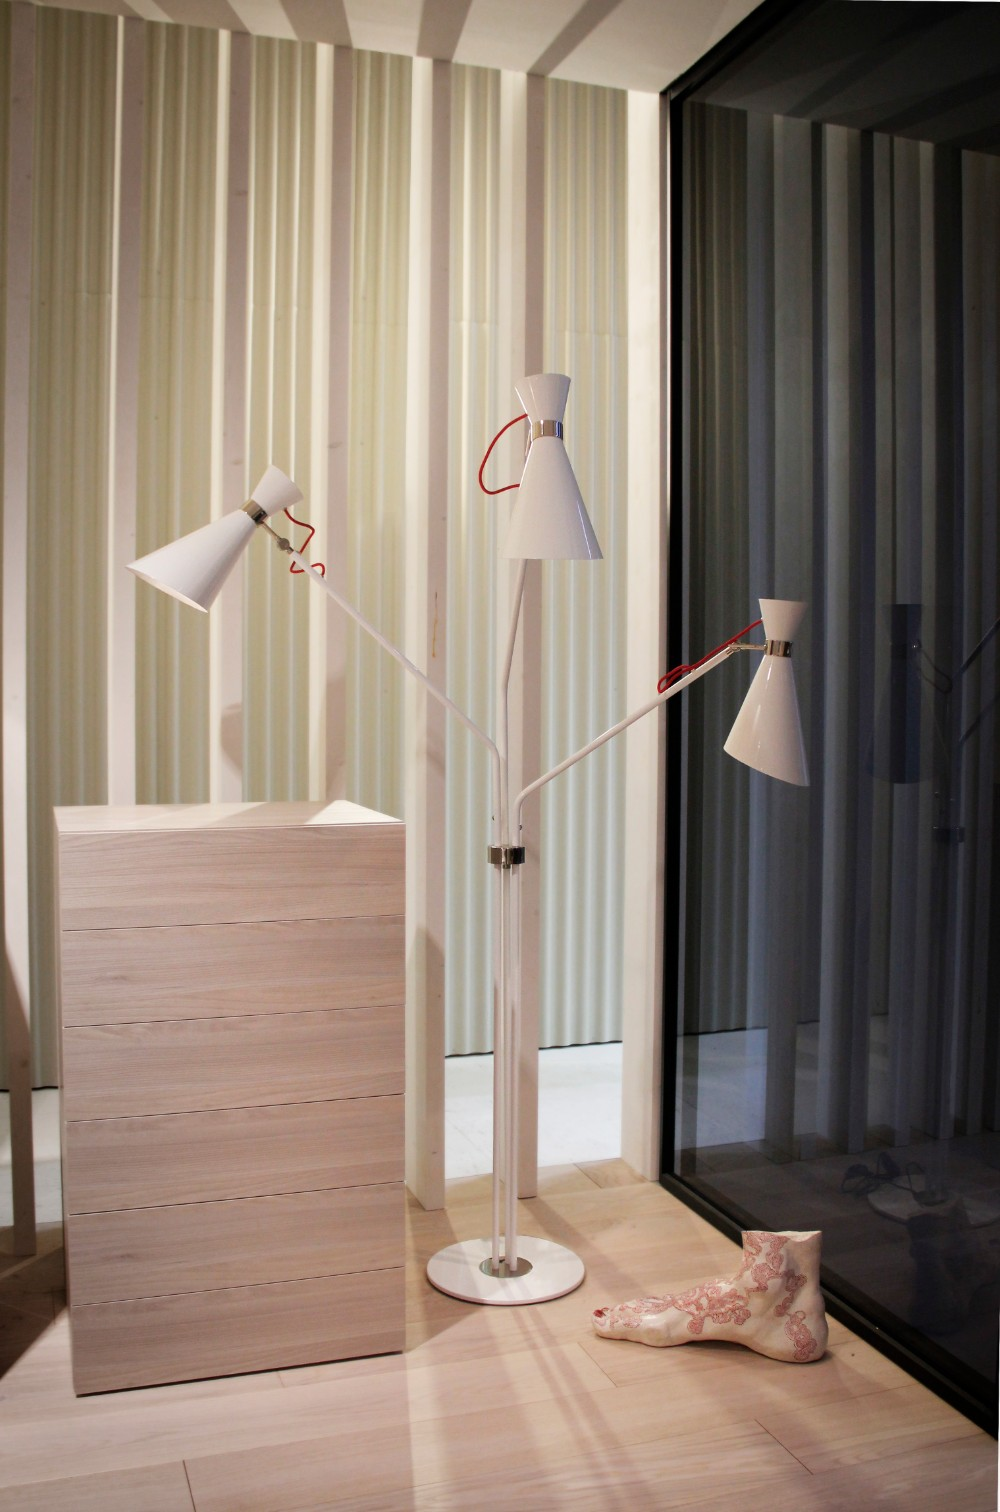 Euroluce 2017 Report- DelightFULL's Lamps Are Coming to Milan!